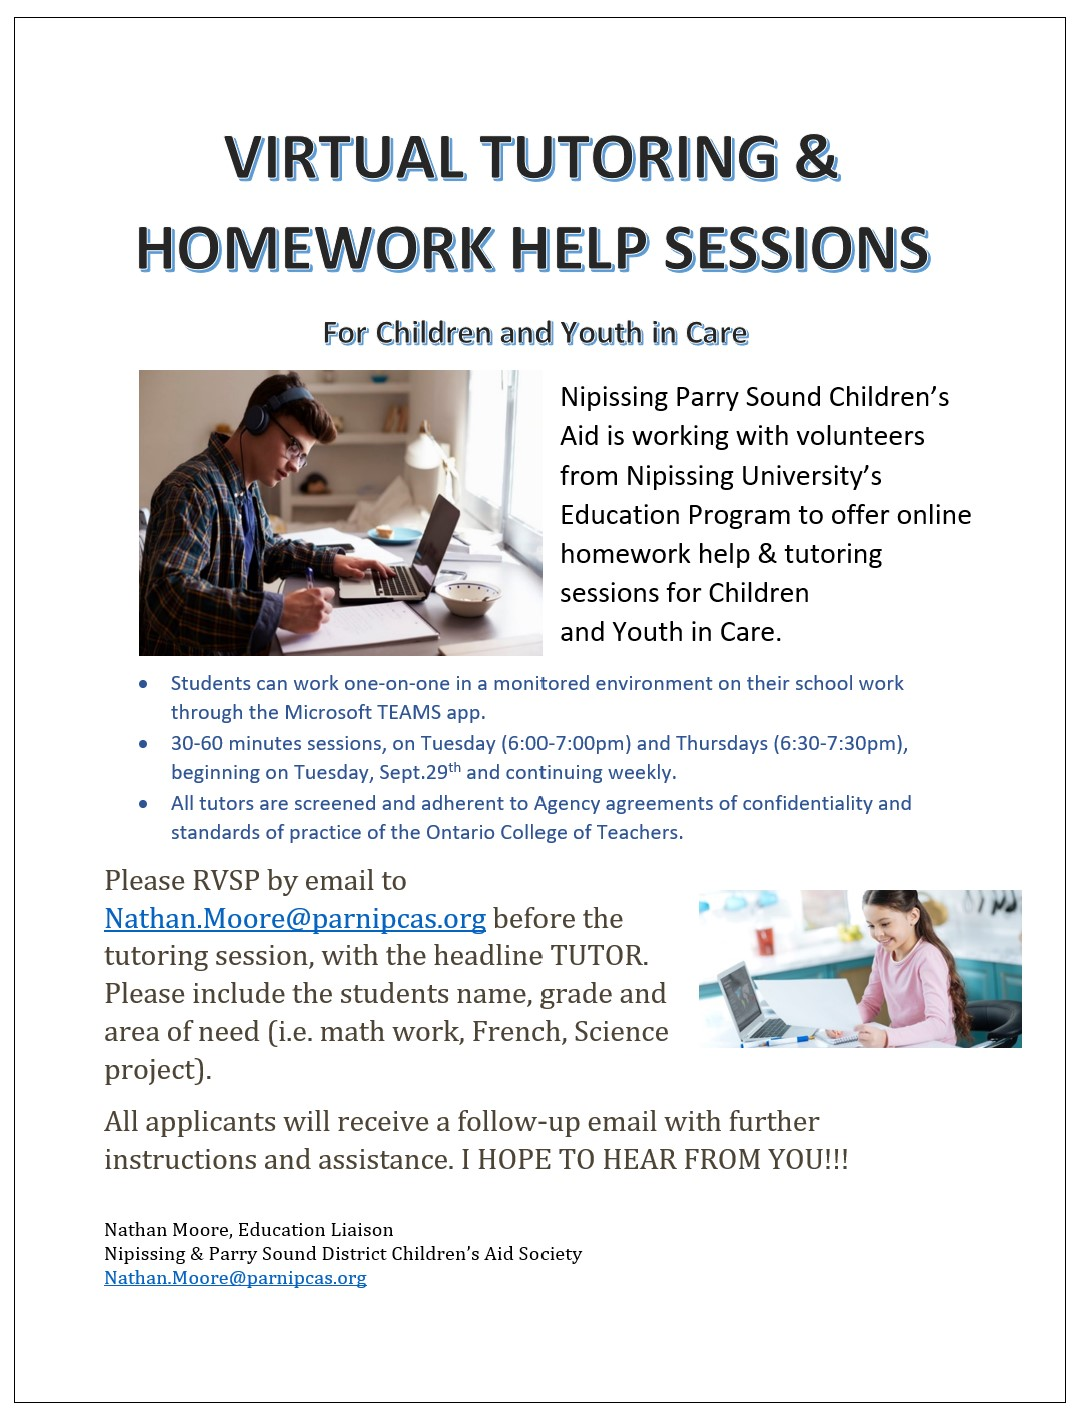 Virtual Tutoring & Homework Help Sessions